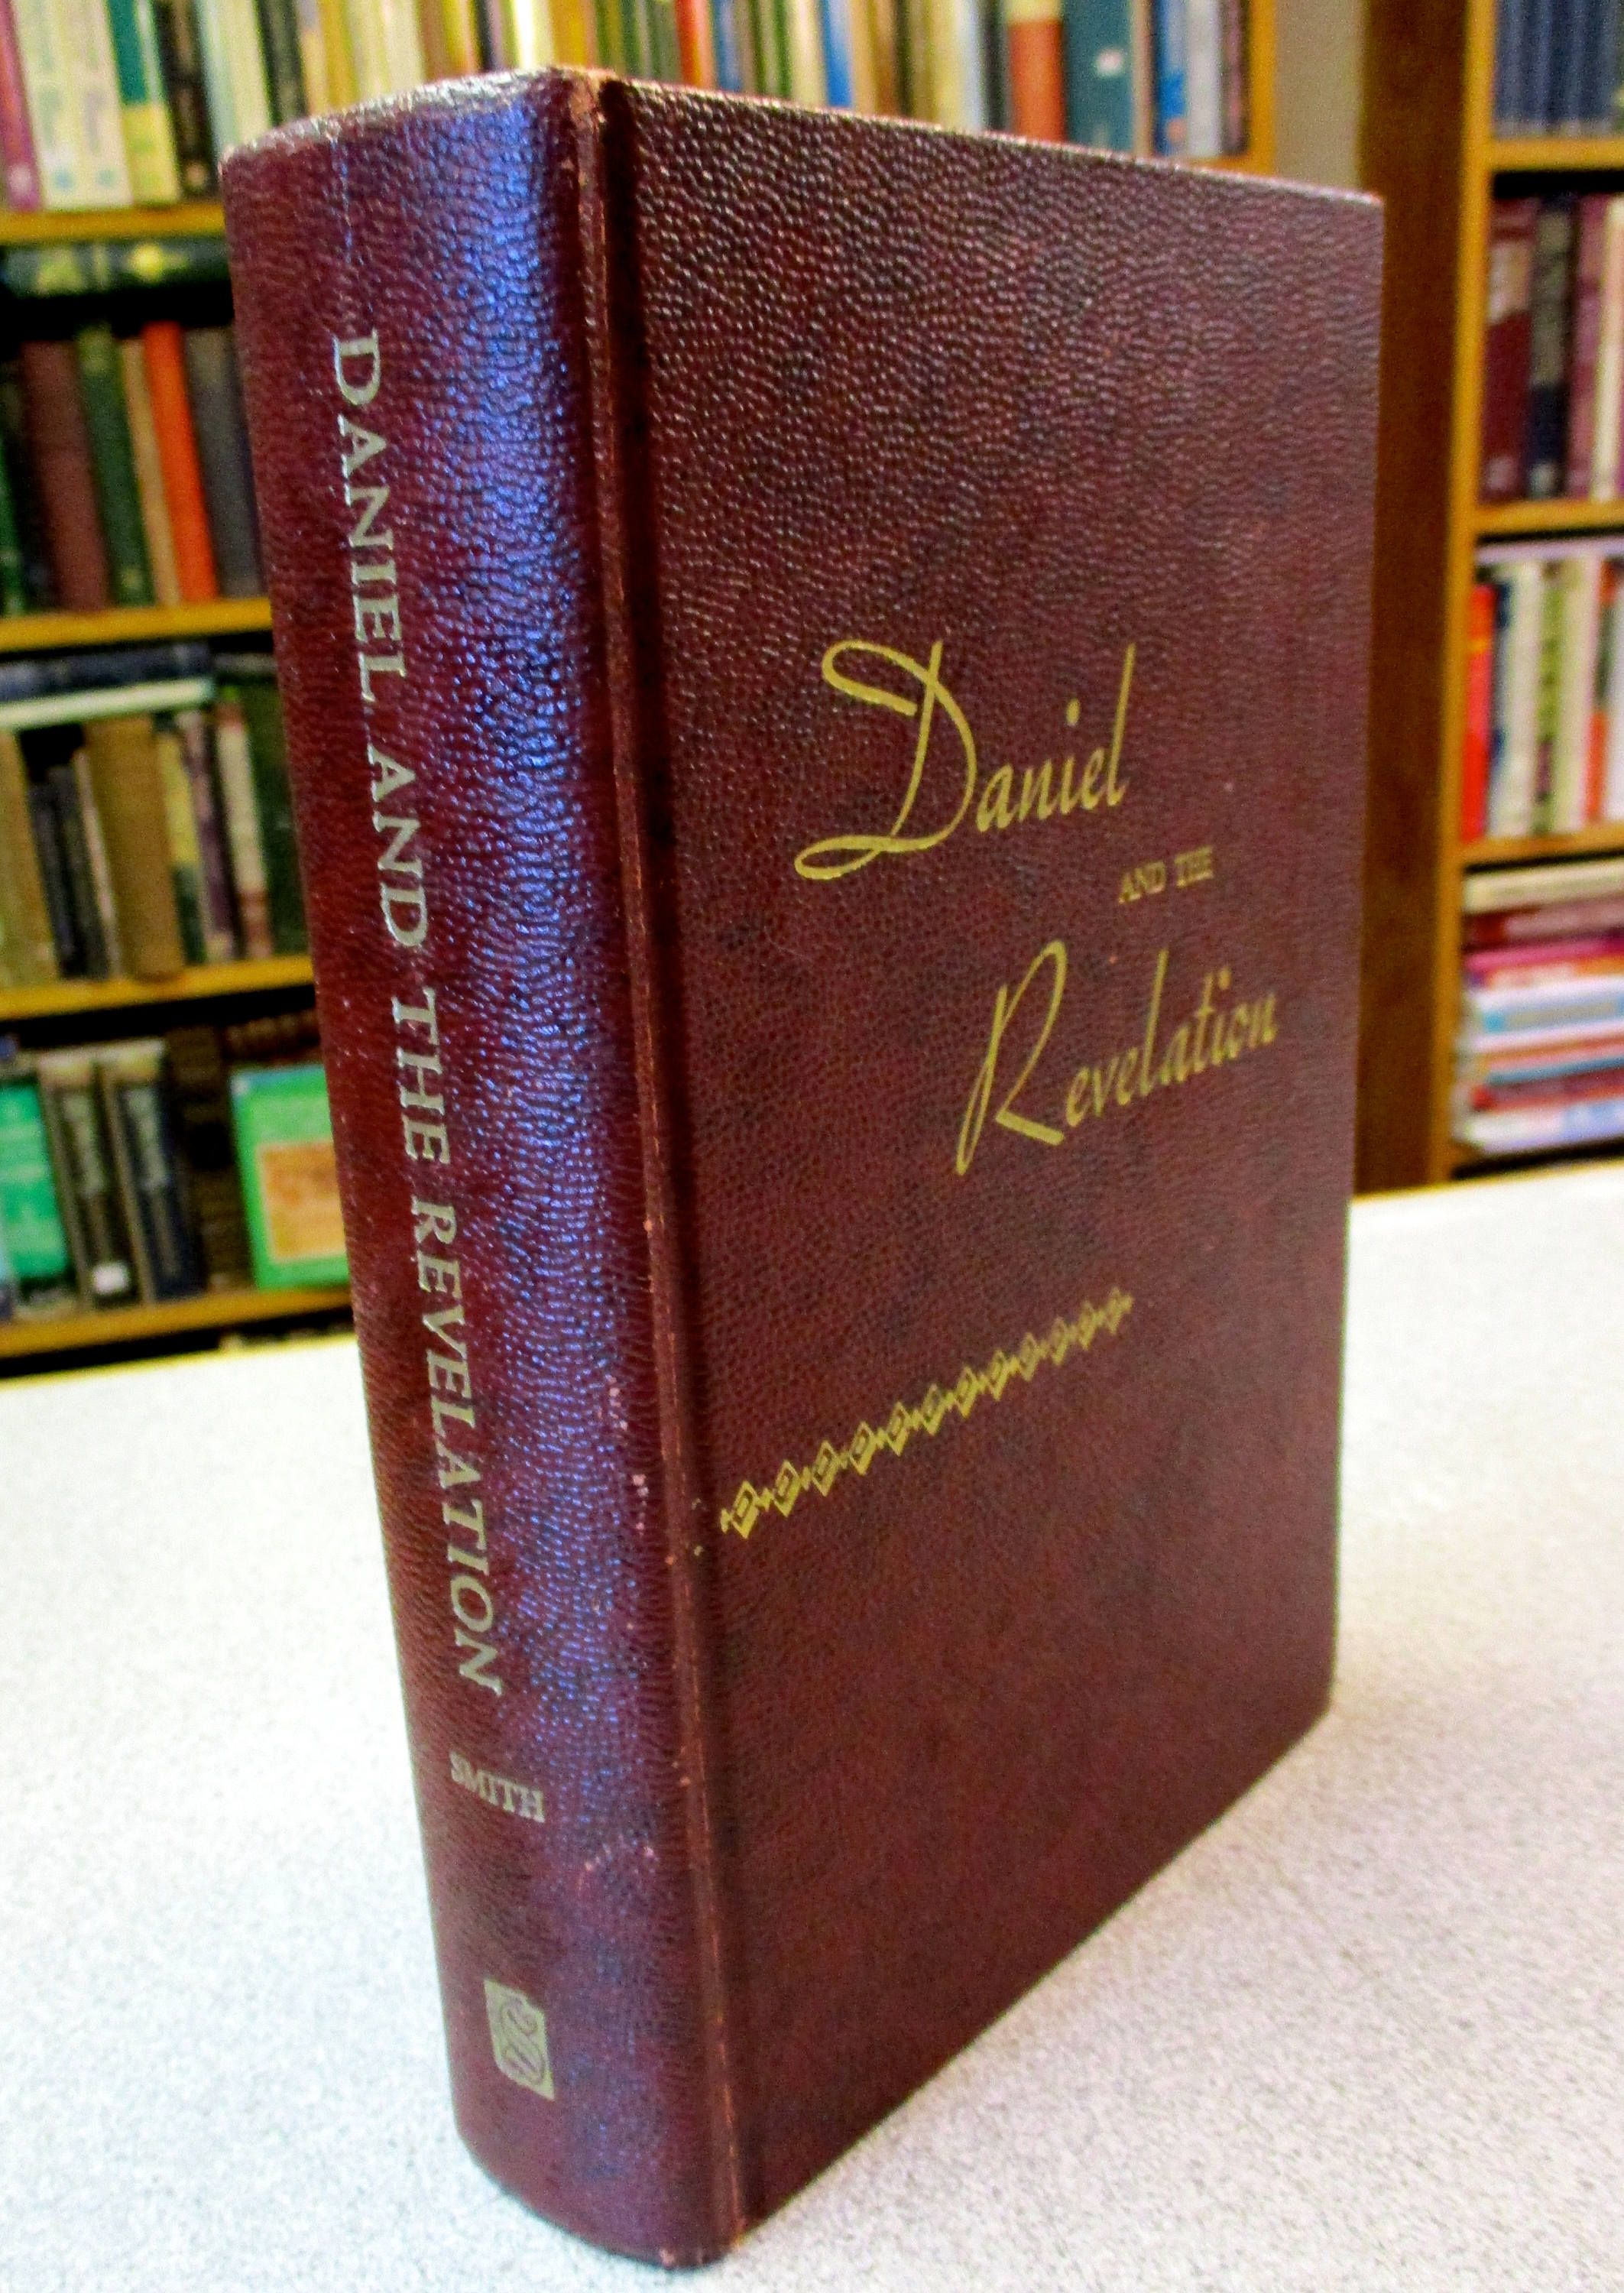 Vintage 1944 DANIEL And The REVELATION by Uriah Smith Bible